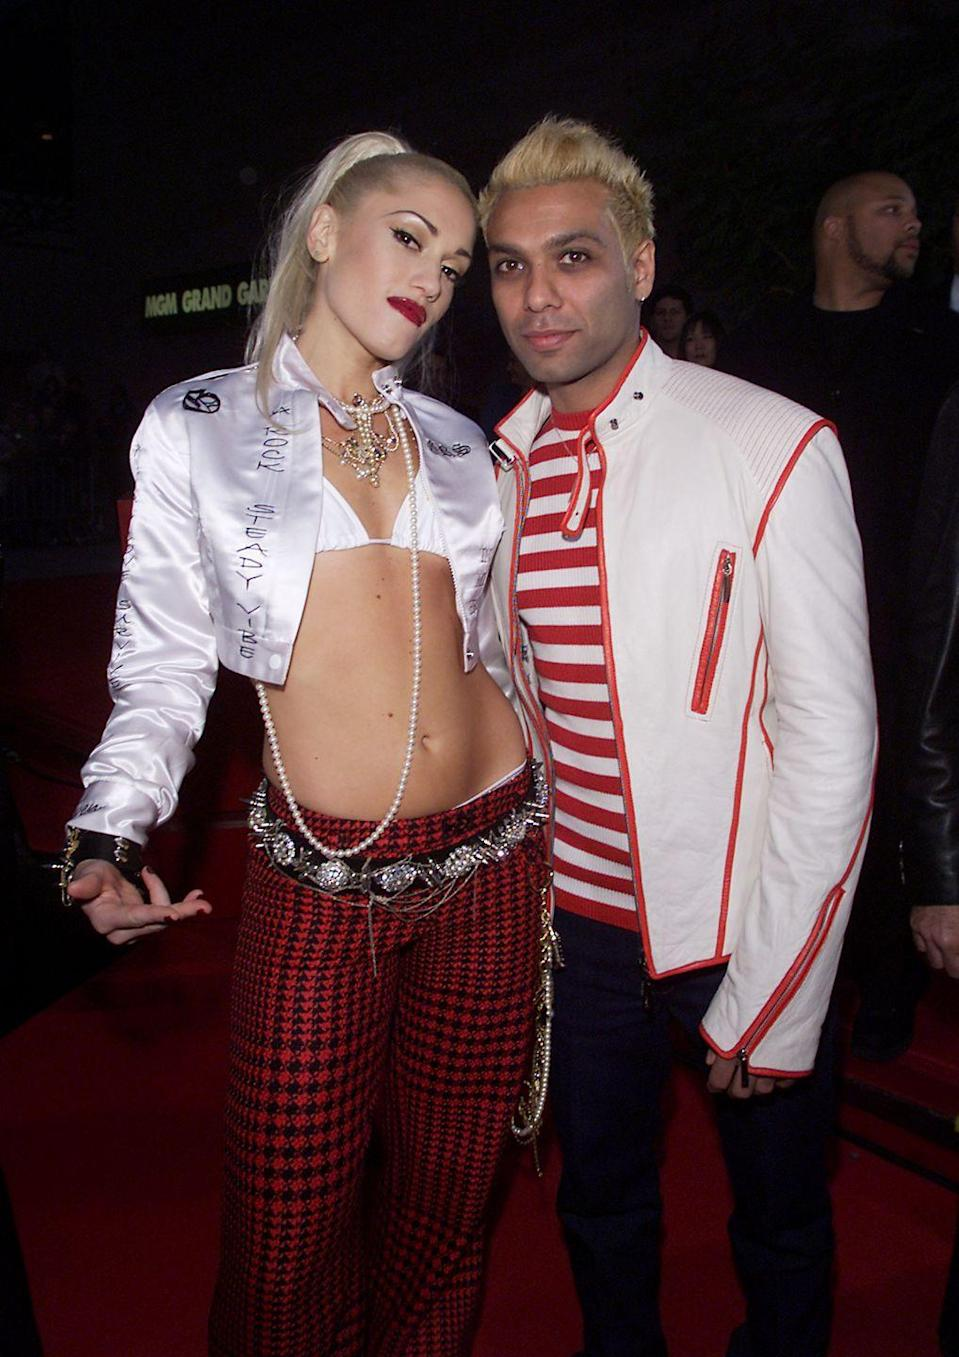 """<p>One of No Doubt's most famous hits was written by Gwen Stefani after she broke up with the group's bassist, Tony Kanal. """"It used to be more upbeat, more of a Seventies rock-type thing,"""" she told<a href=""""https://www.independent.co.uk/arts-entertainment/music/features/story-of-the-song-dont-speak-no-doubt-1996-2044589.html"""" rel=""""nofollow noopener"""" target=""""_blank"""" data-ylk=""""slk:The Independent"""" class=""""link rapid-noclick-resp""""> The Independent</a>. """"[When] Tony and I broke up ... it turned into a sad song."""" </p>"""